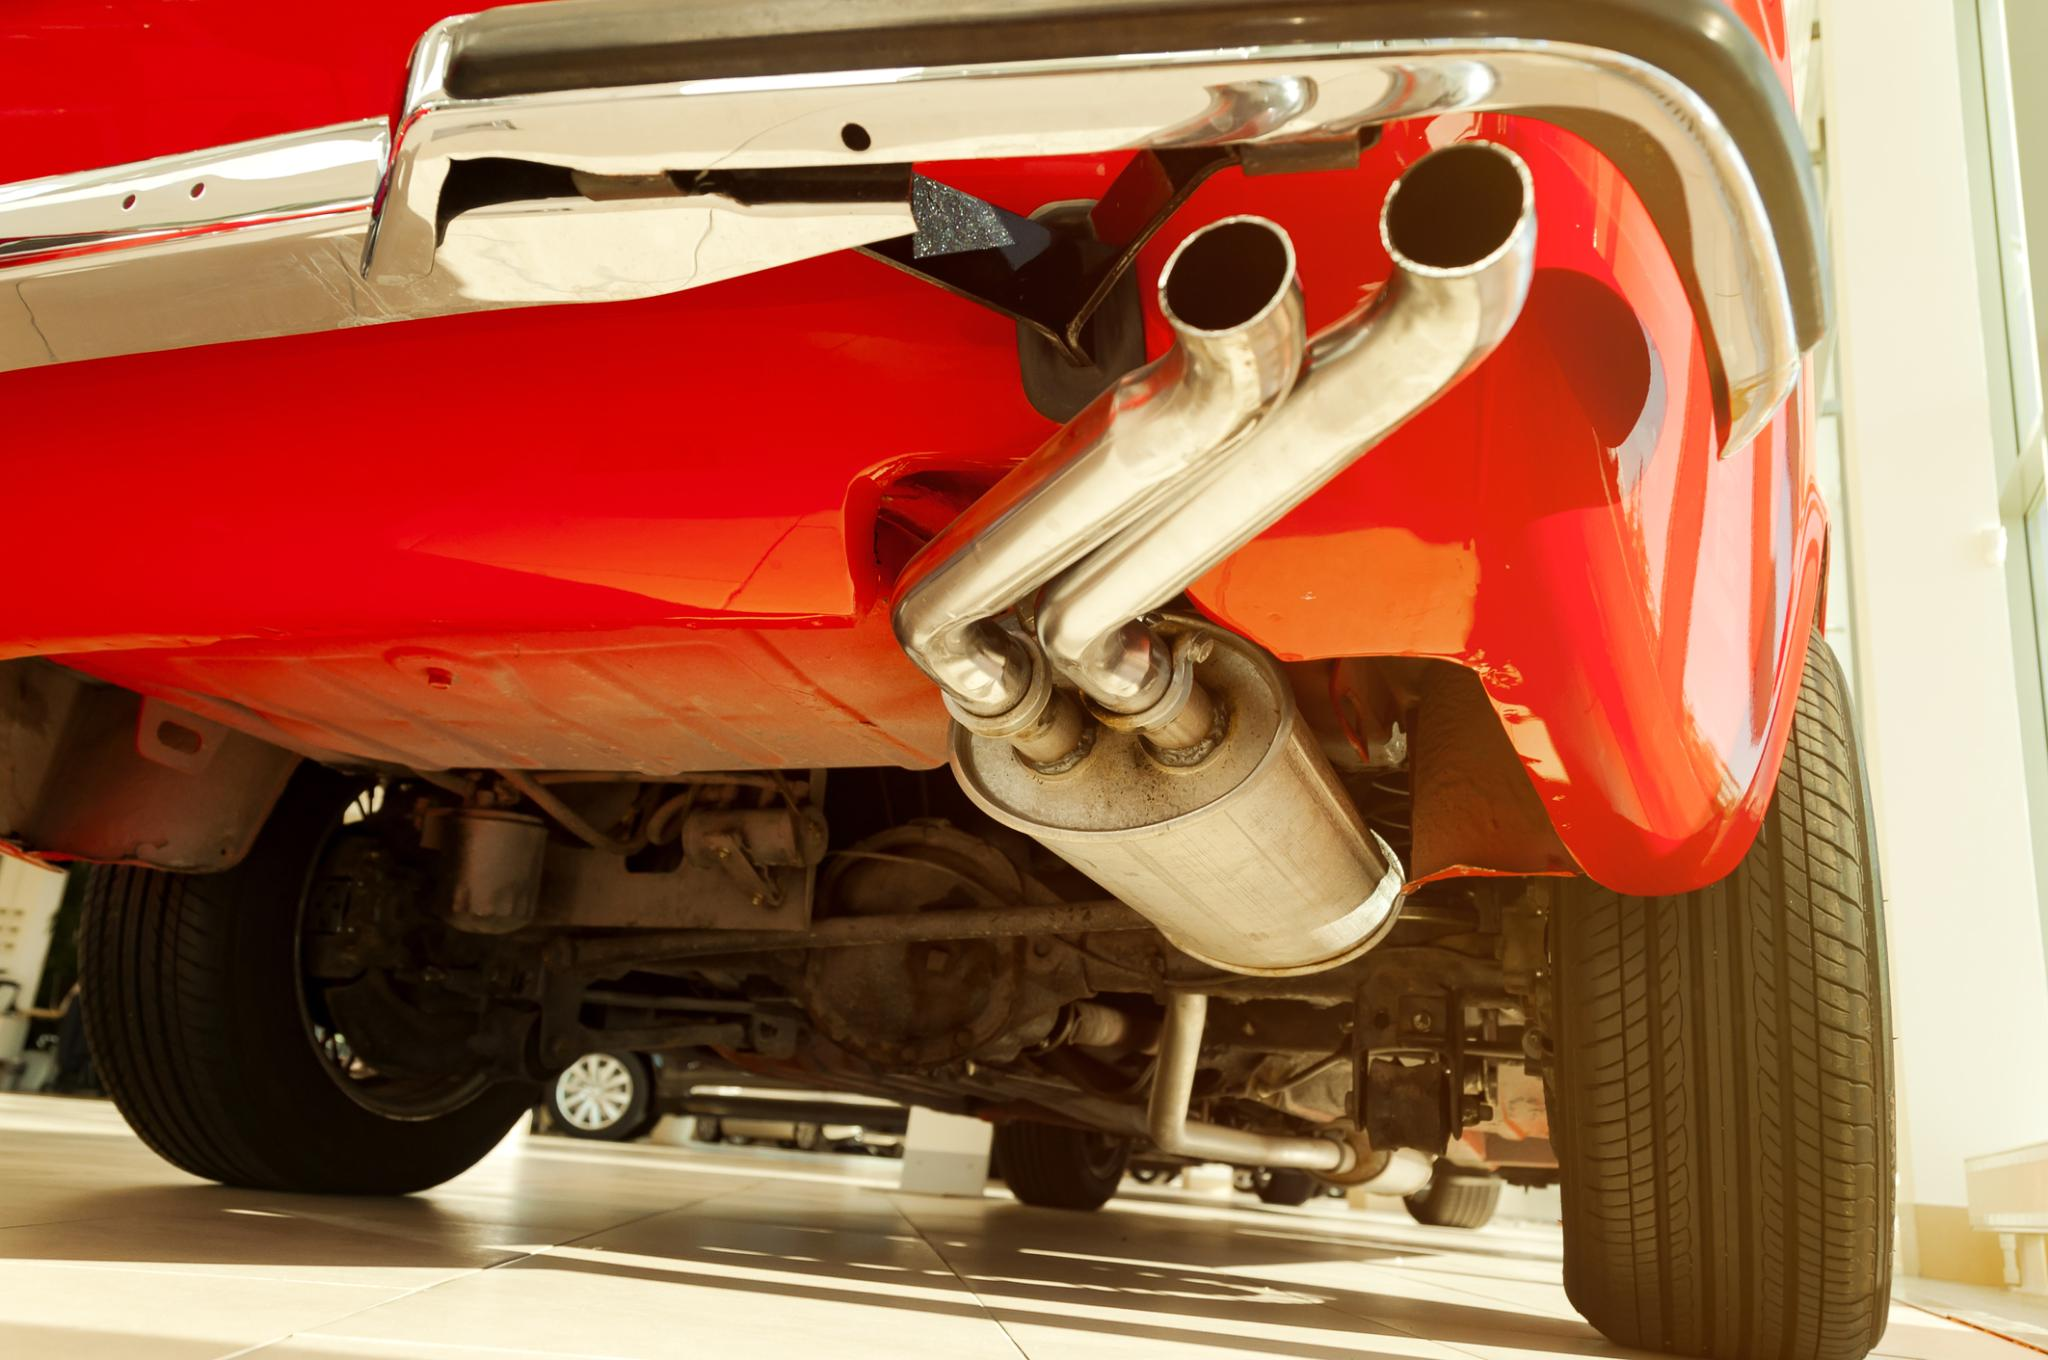 muffler repair on red sports vehicle